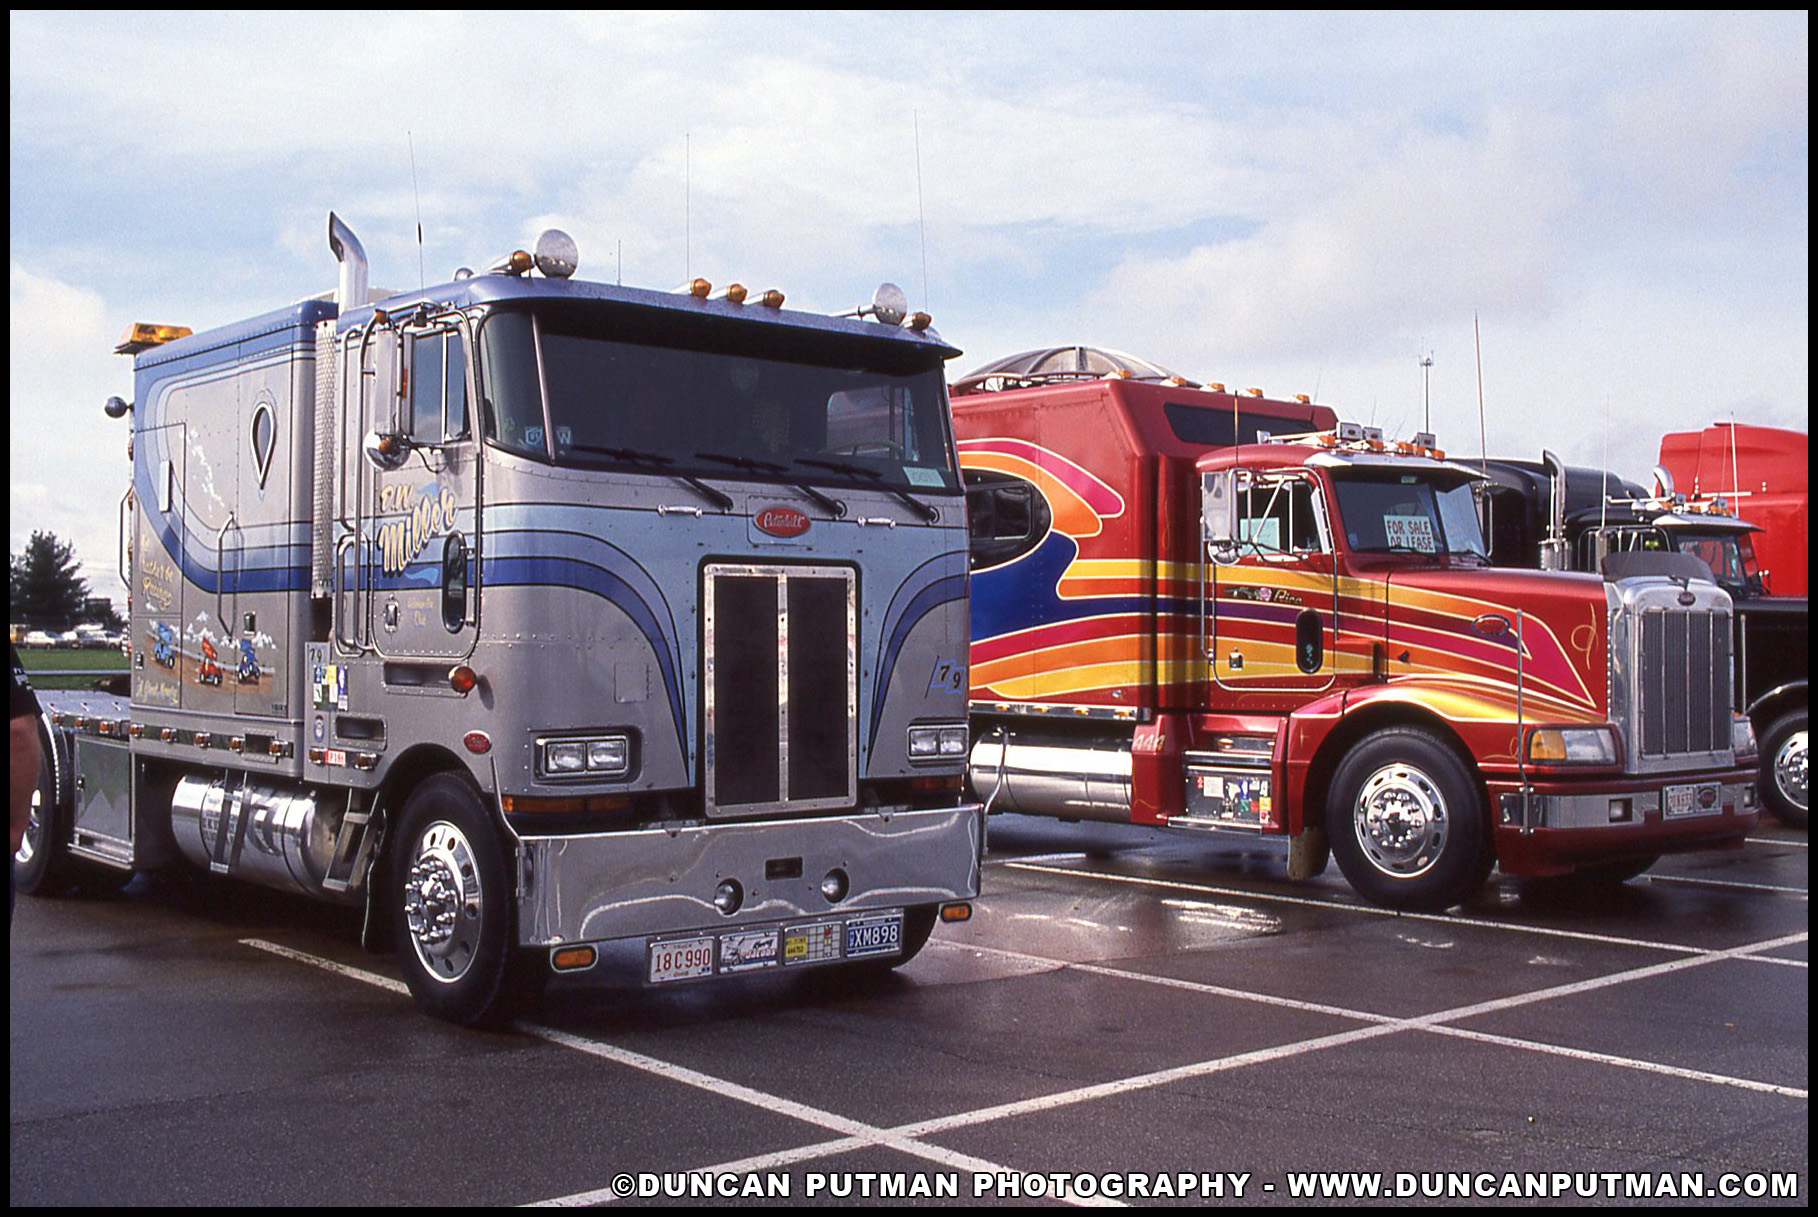 DuncanPutman com Photo of the Week - A Peterbilt 362 and 377